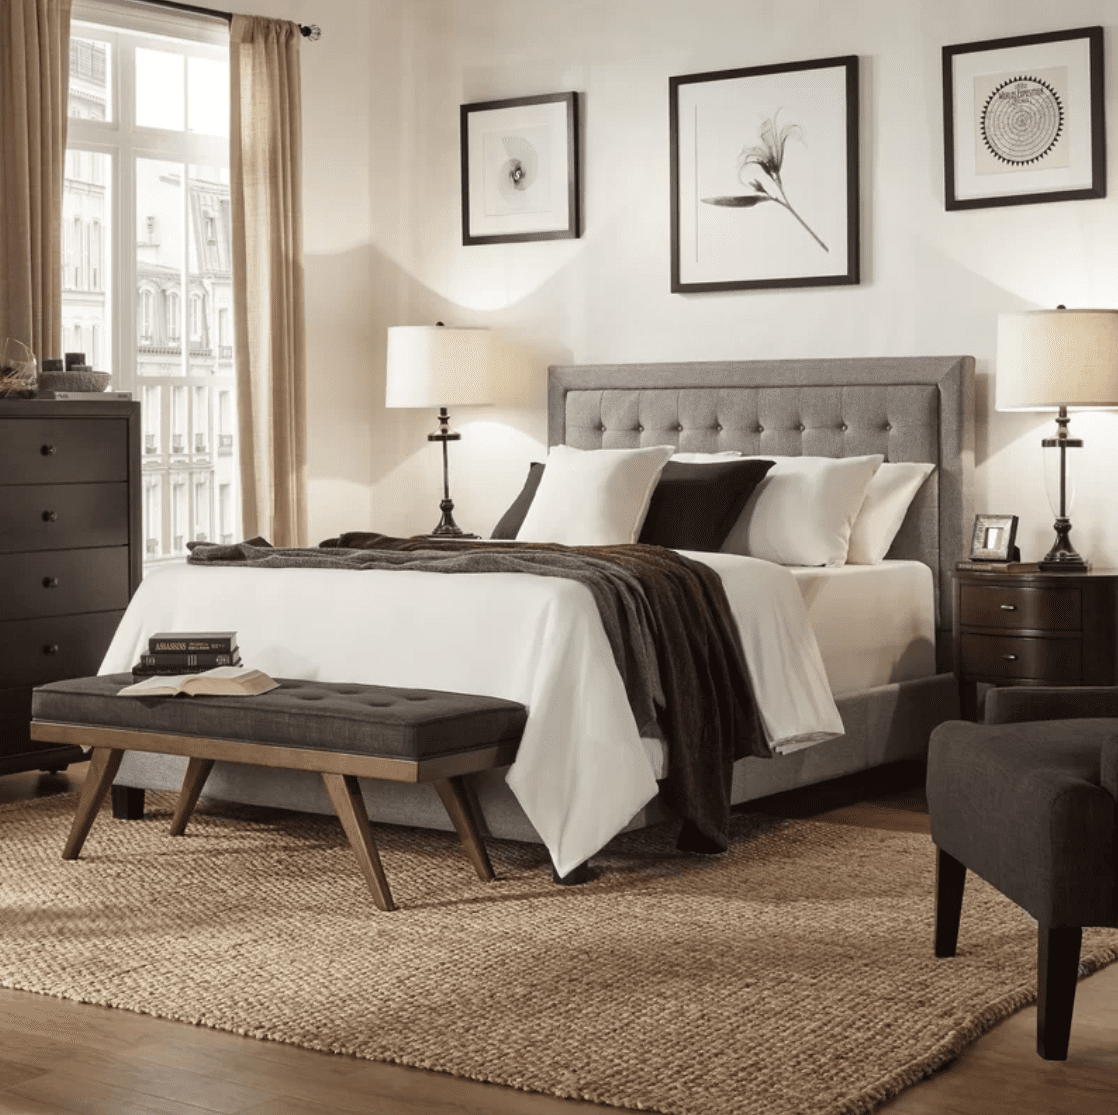 28 Of The Best Places To Buy Inexpensive Furniture Online: The 7 Best Places To Buy A Bed In 2020